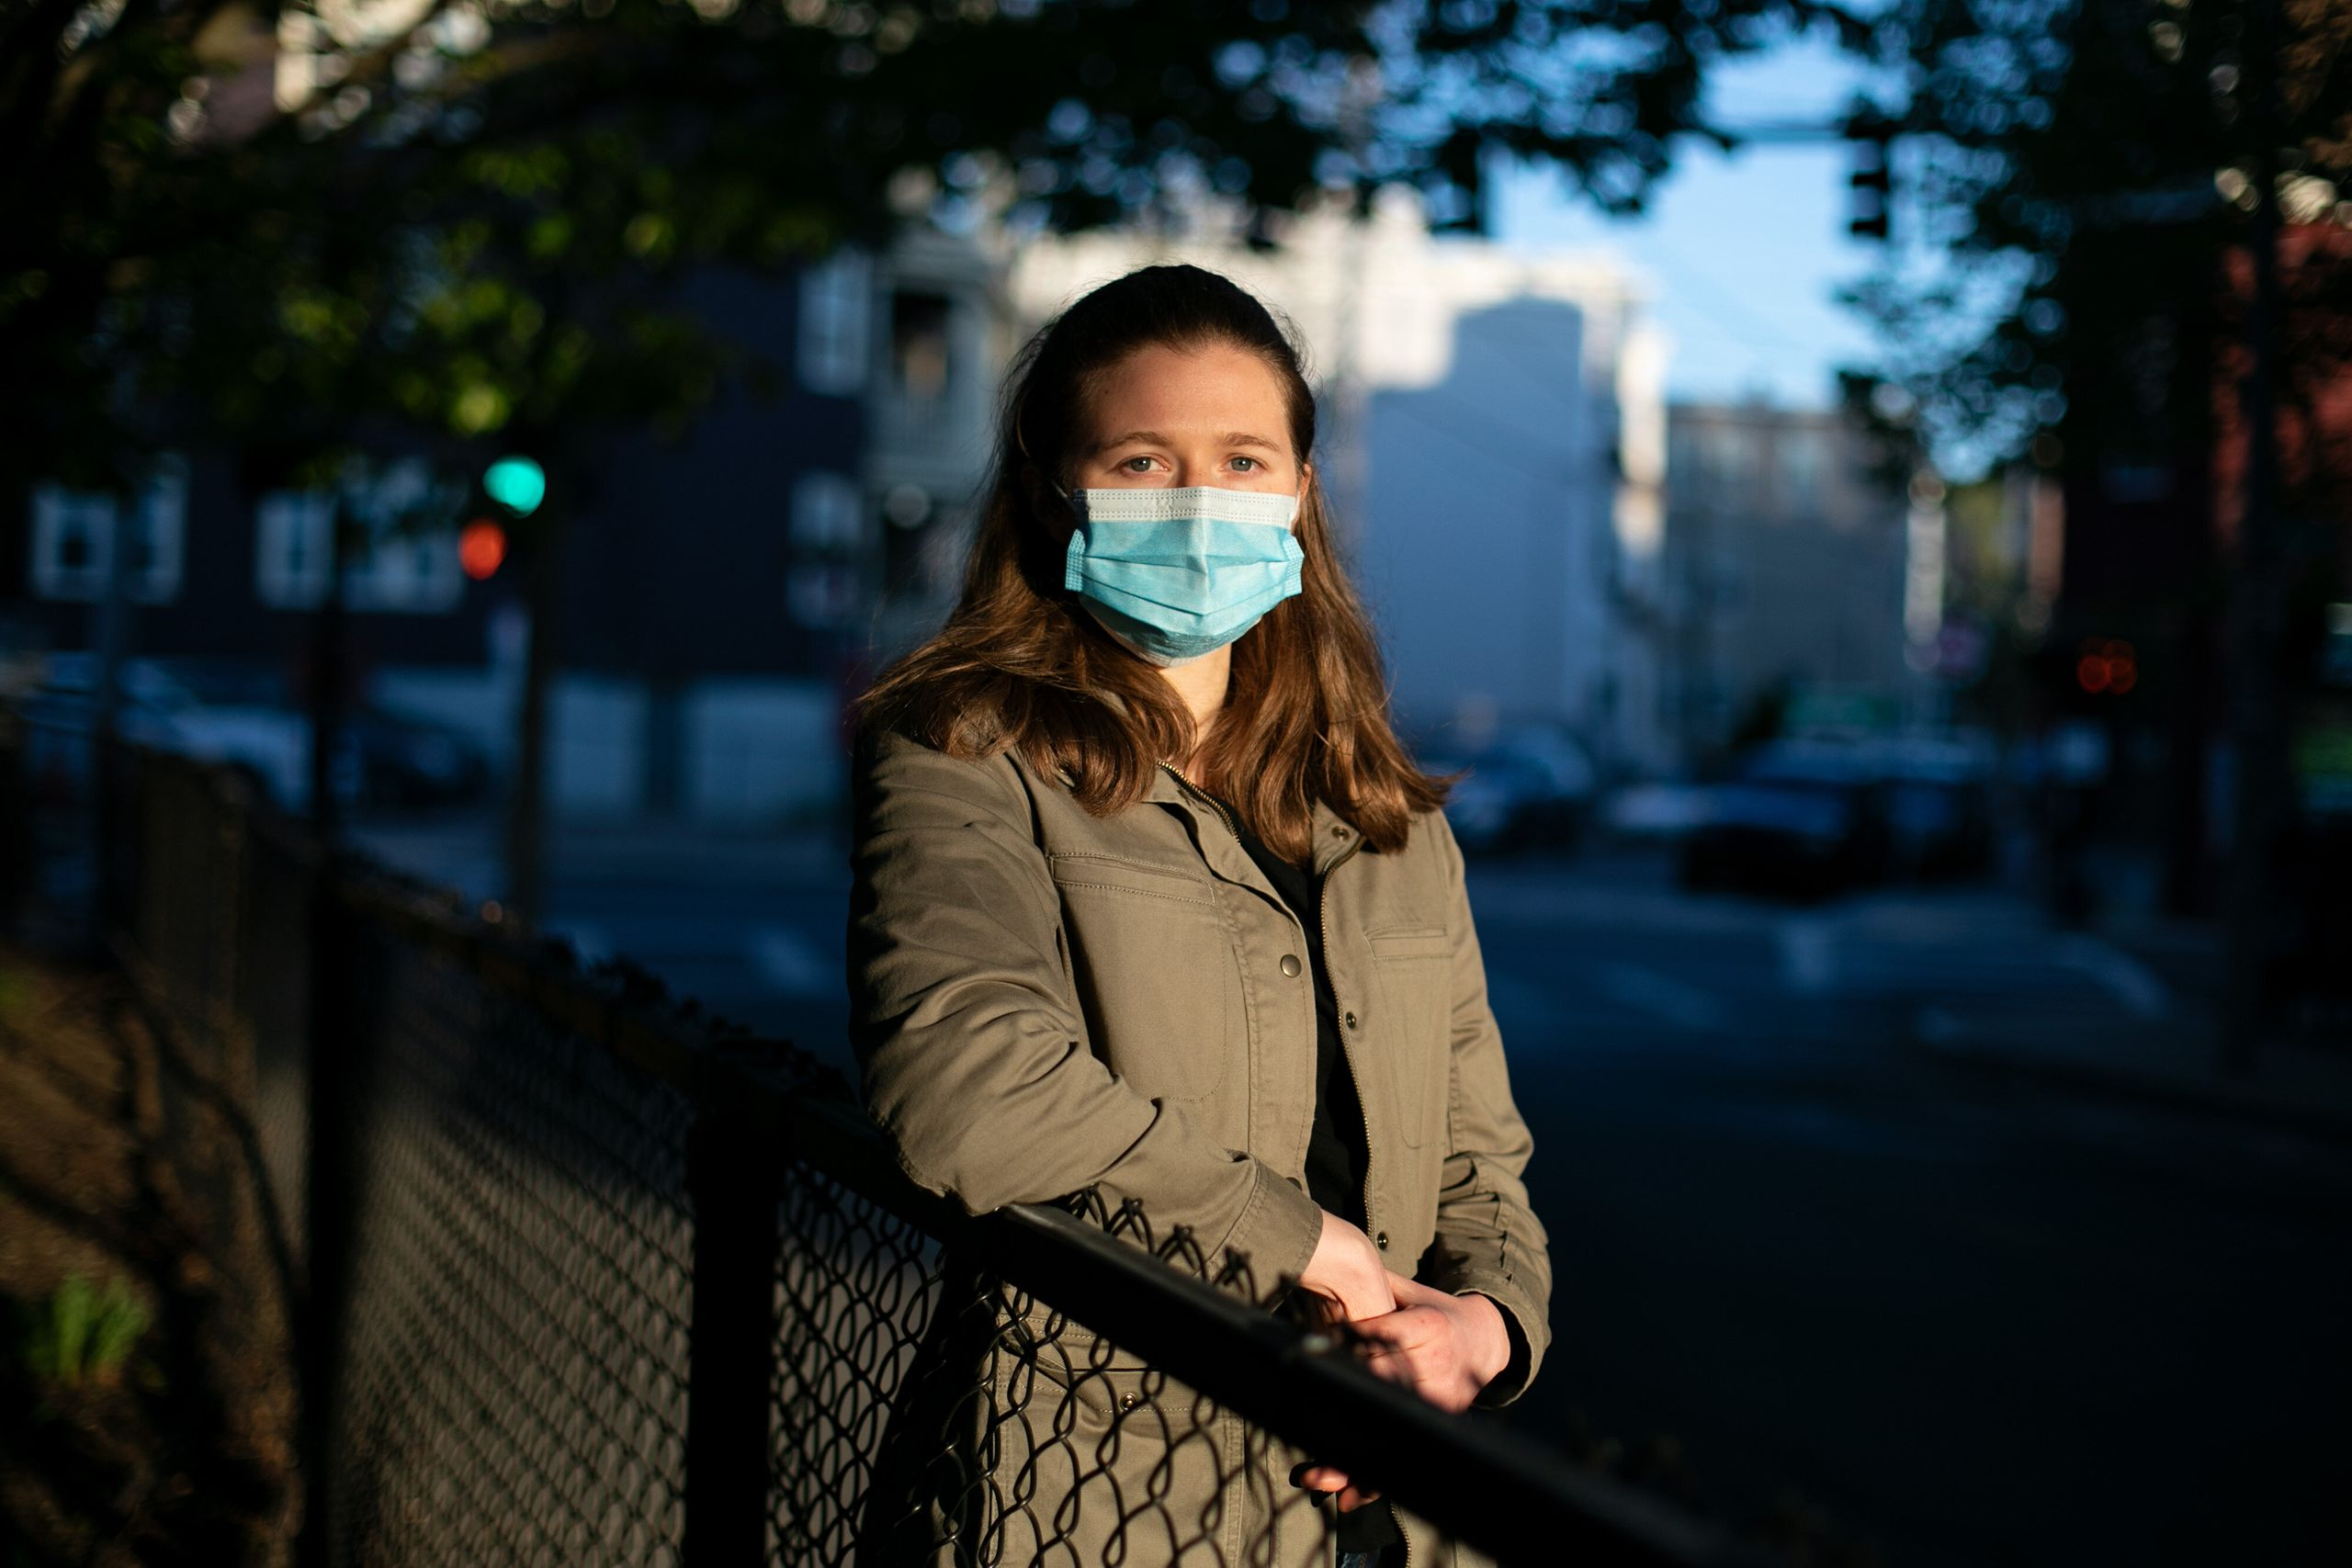 Jessica Schiff, a graduate student at Harvard University's T.H. Chan School of Public Health, volunteered to help Massachuset